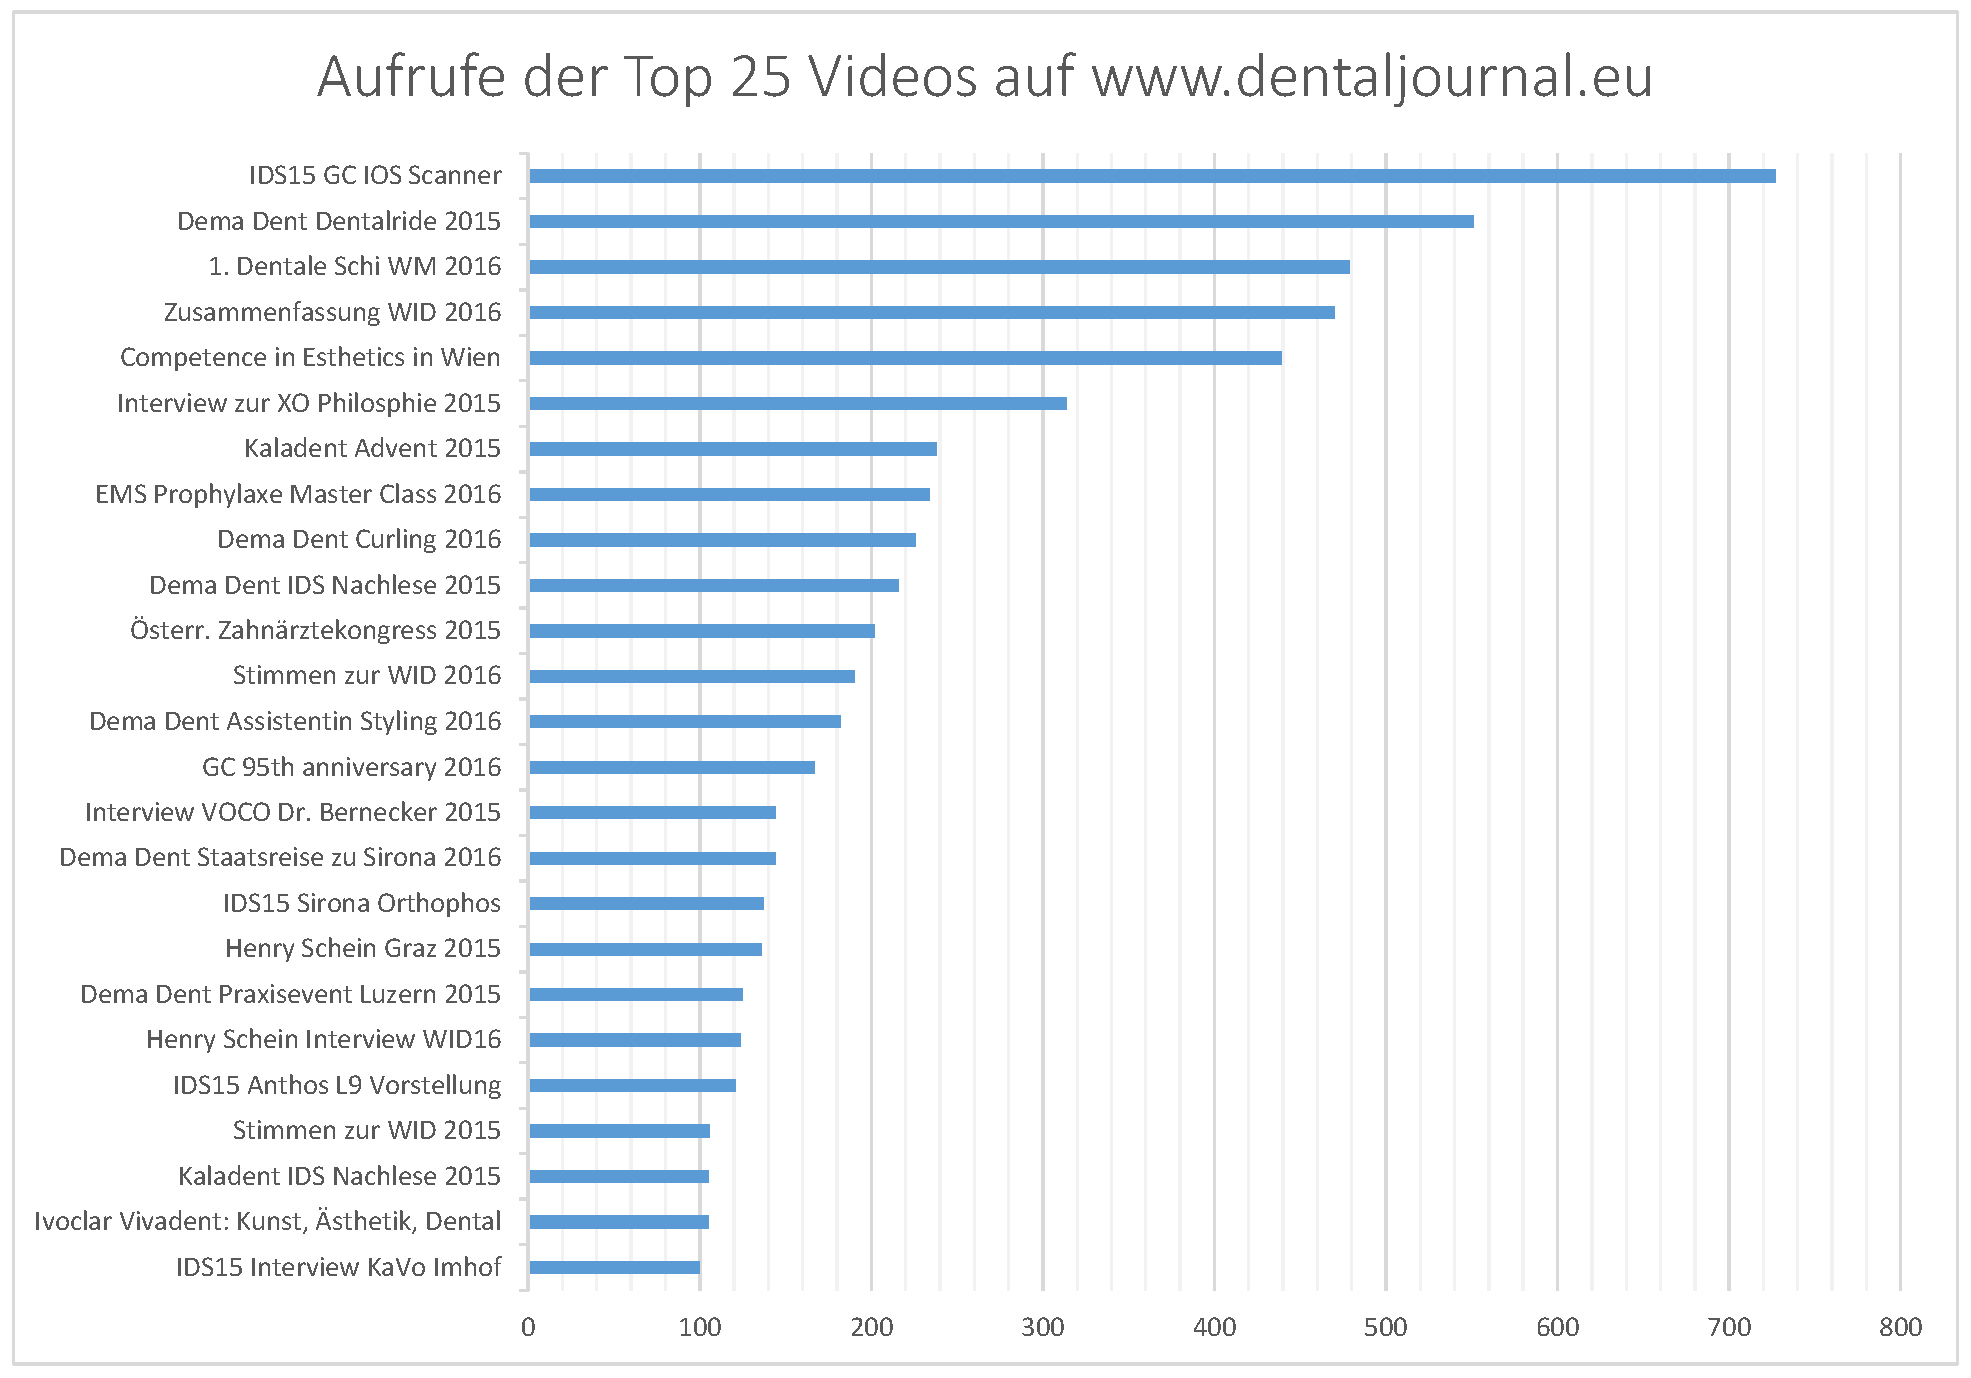 top-25-videos-dentaljournal-eu